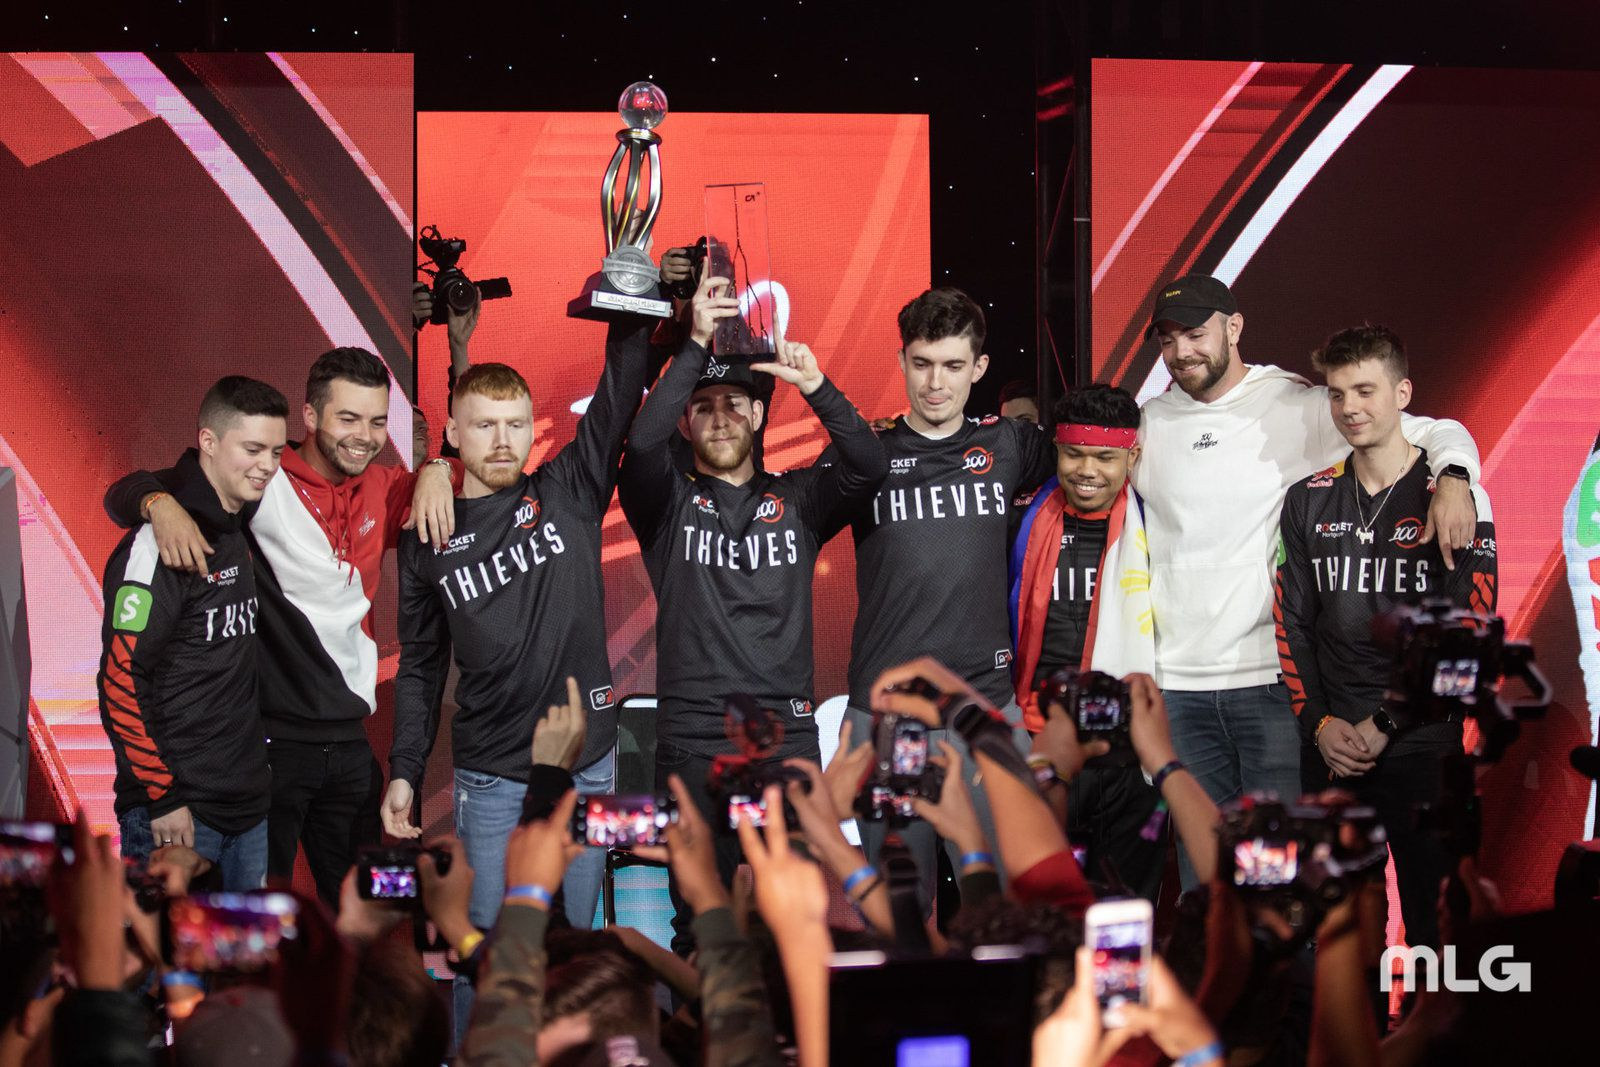 Call Of Duty World League Championship 2019 : 100 Thieves remporte la CWL Anaheim